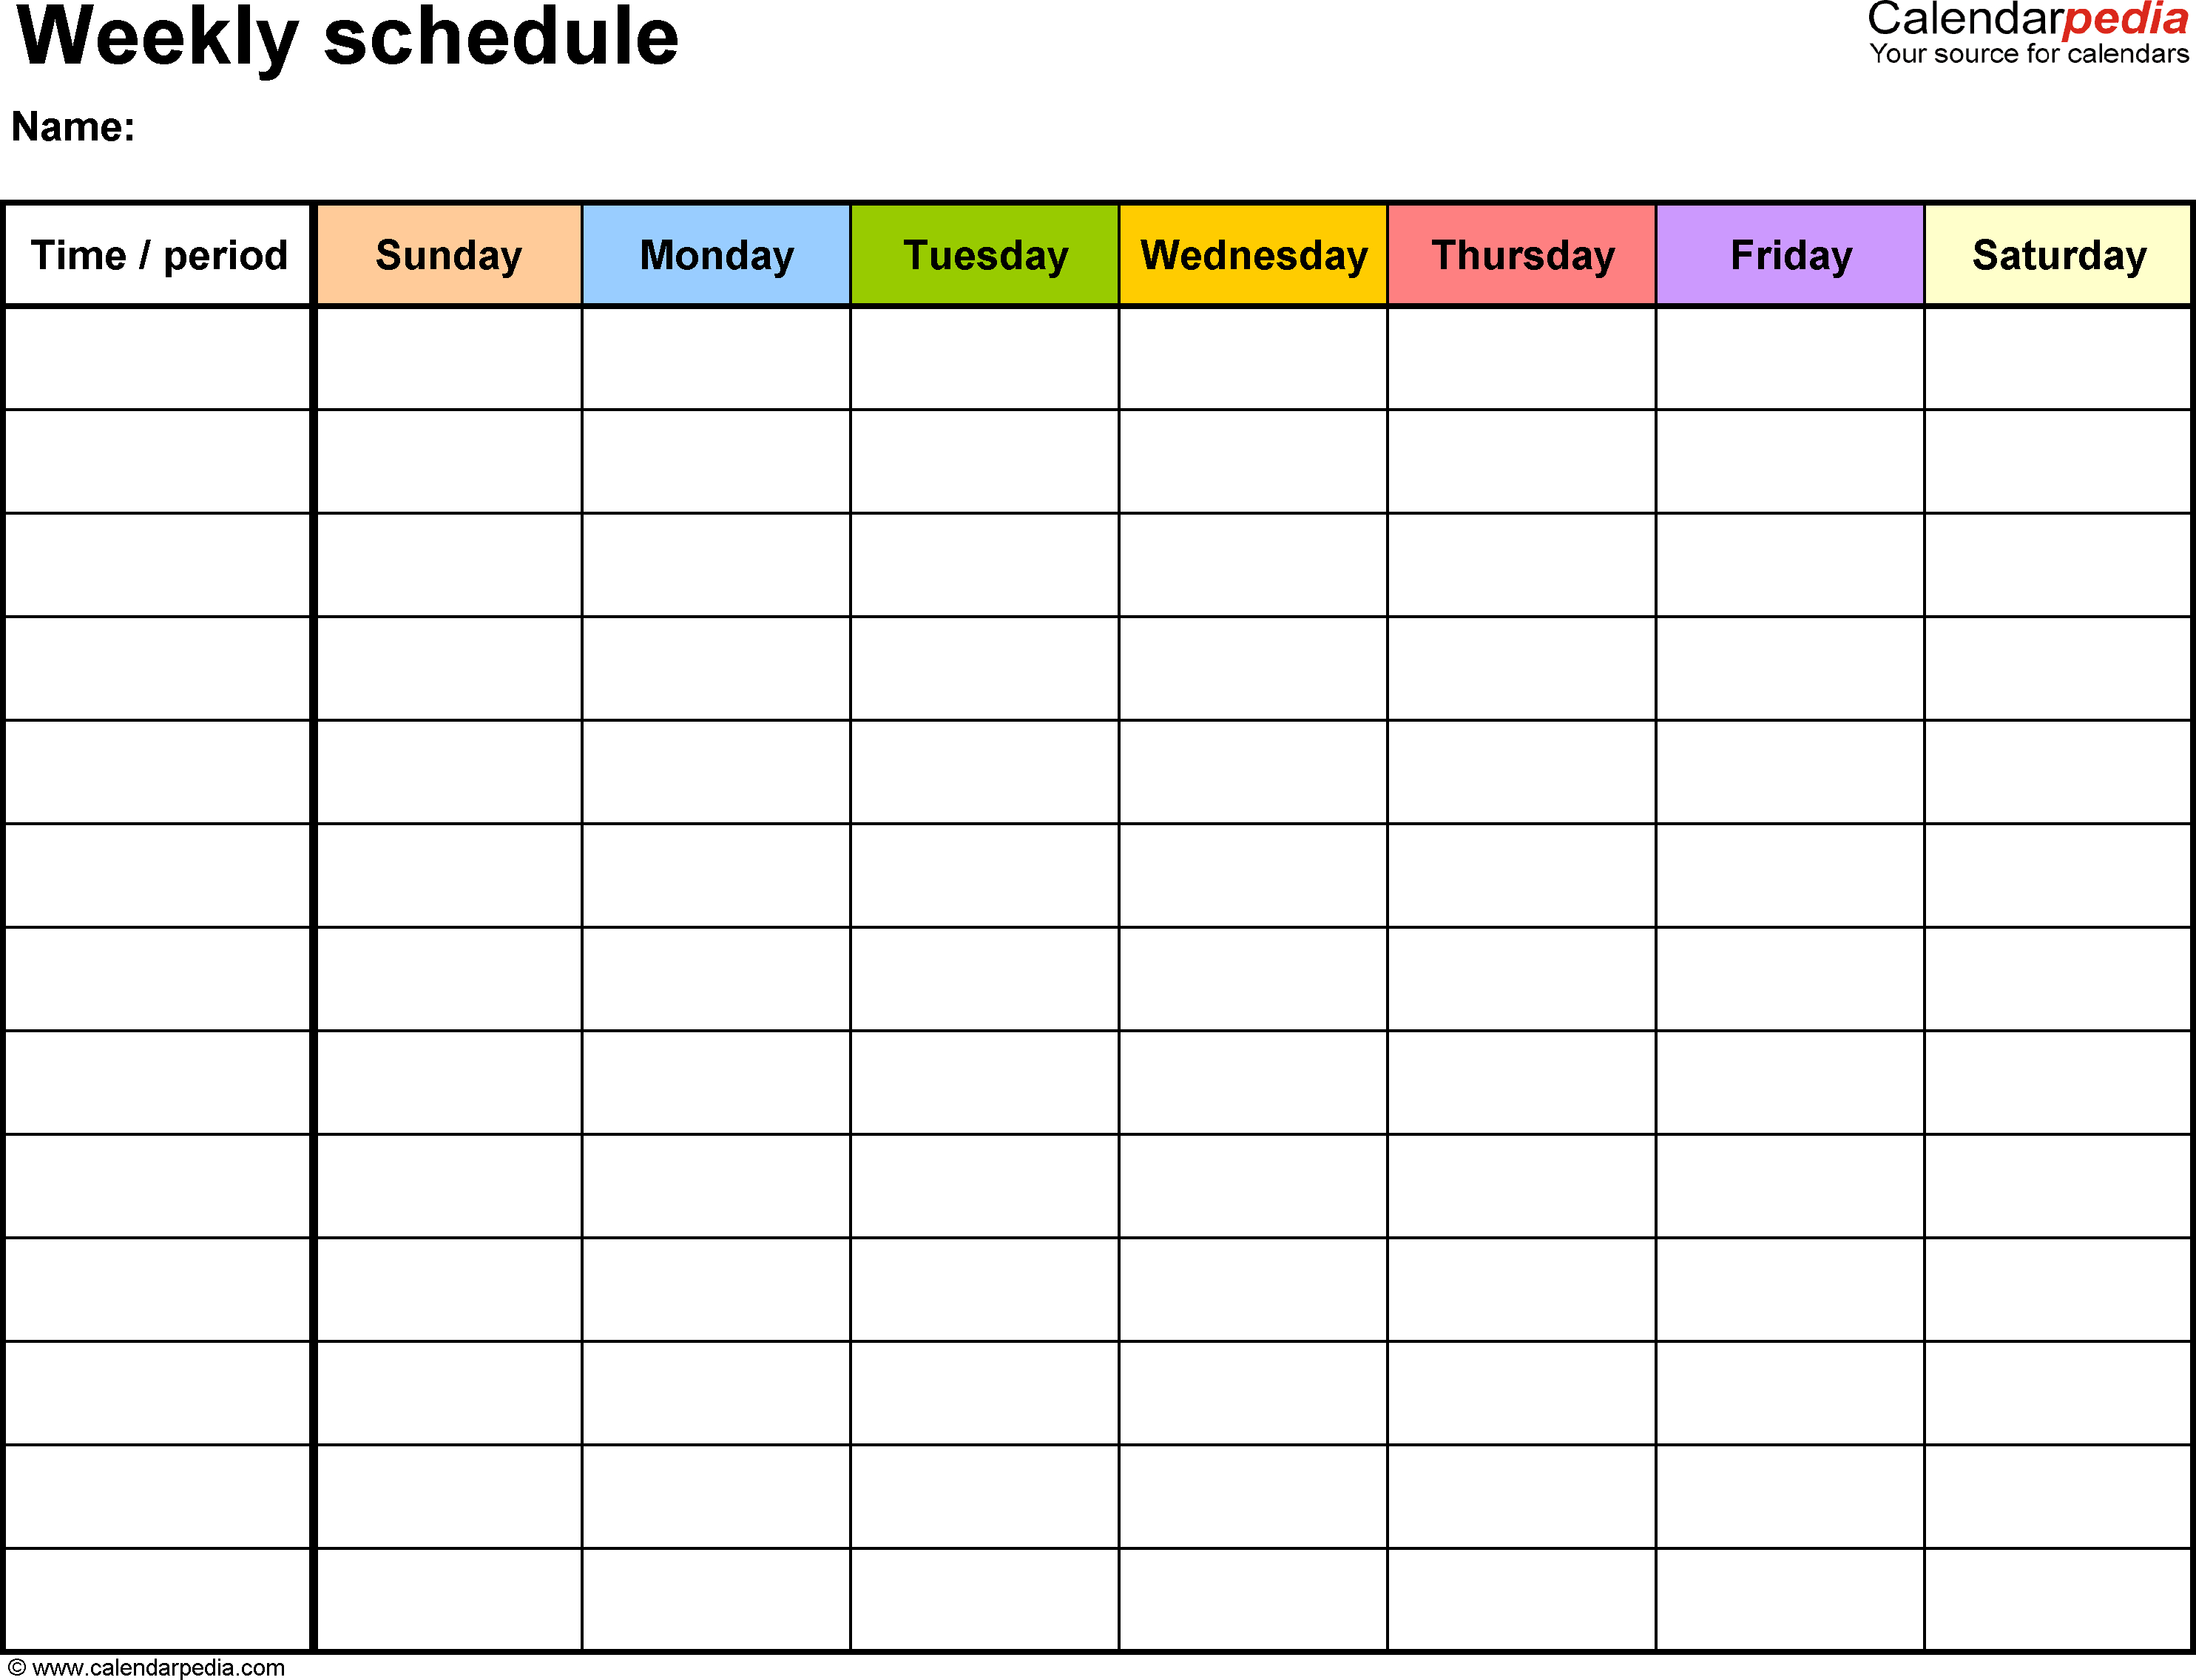 Free Weekly Schedule Templates For Word - 18 Templates regarding 7 Day Weekly Planner Template